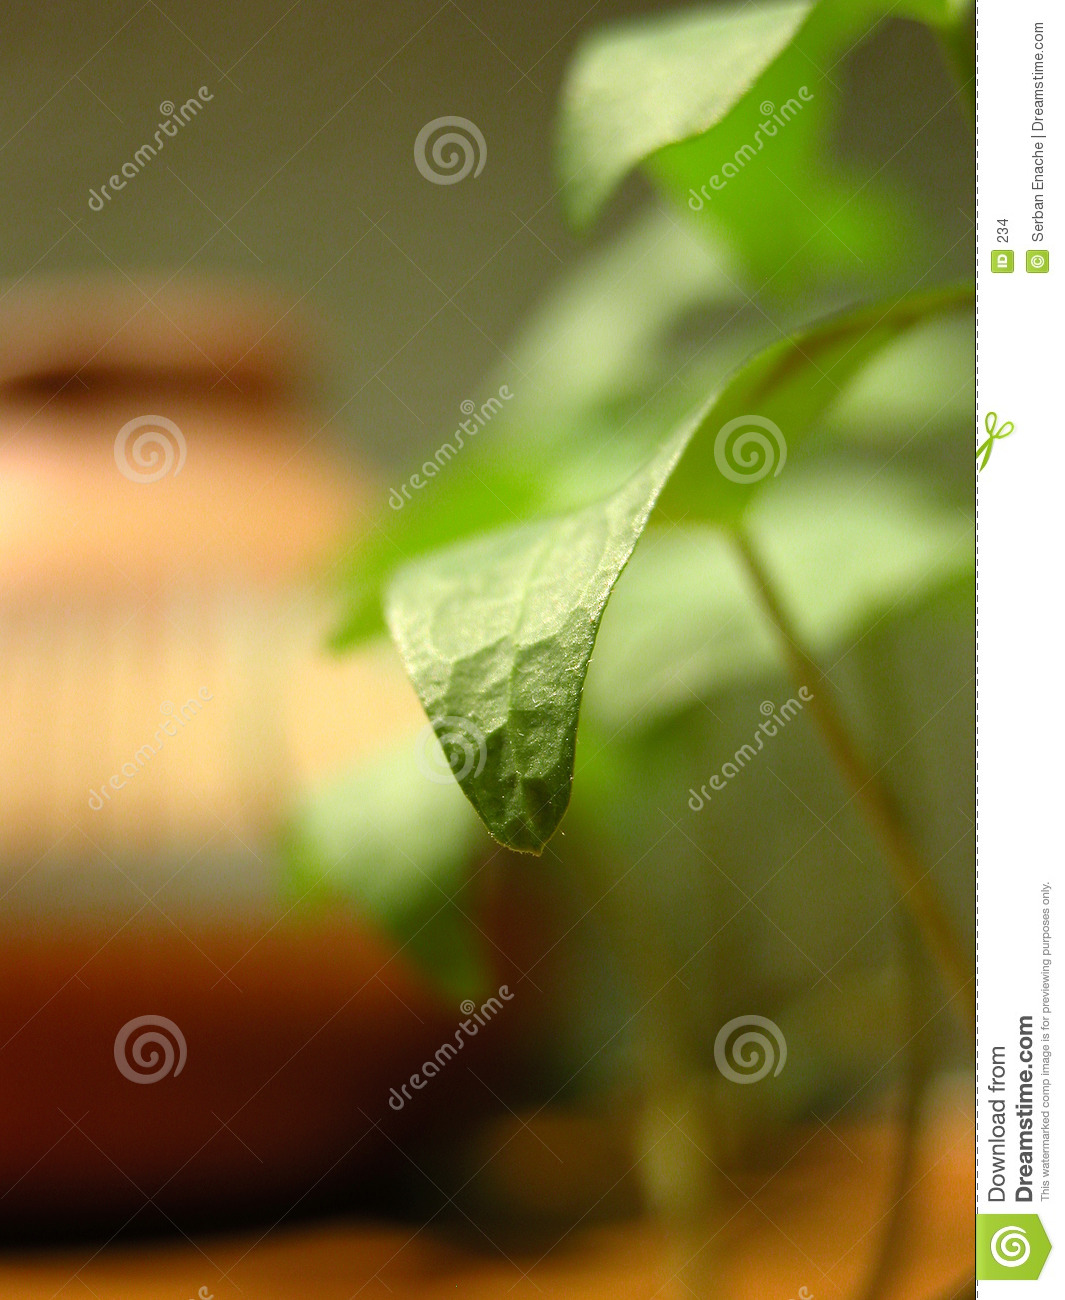 Closeup of a green leaf